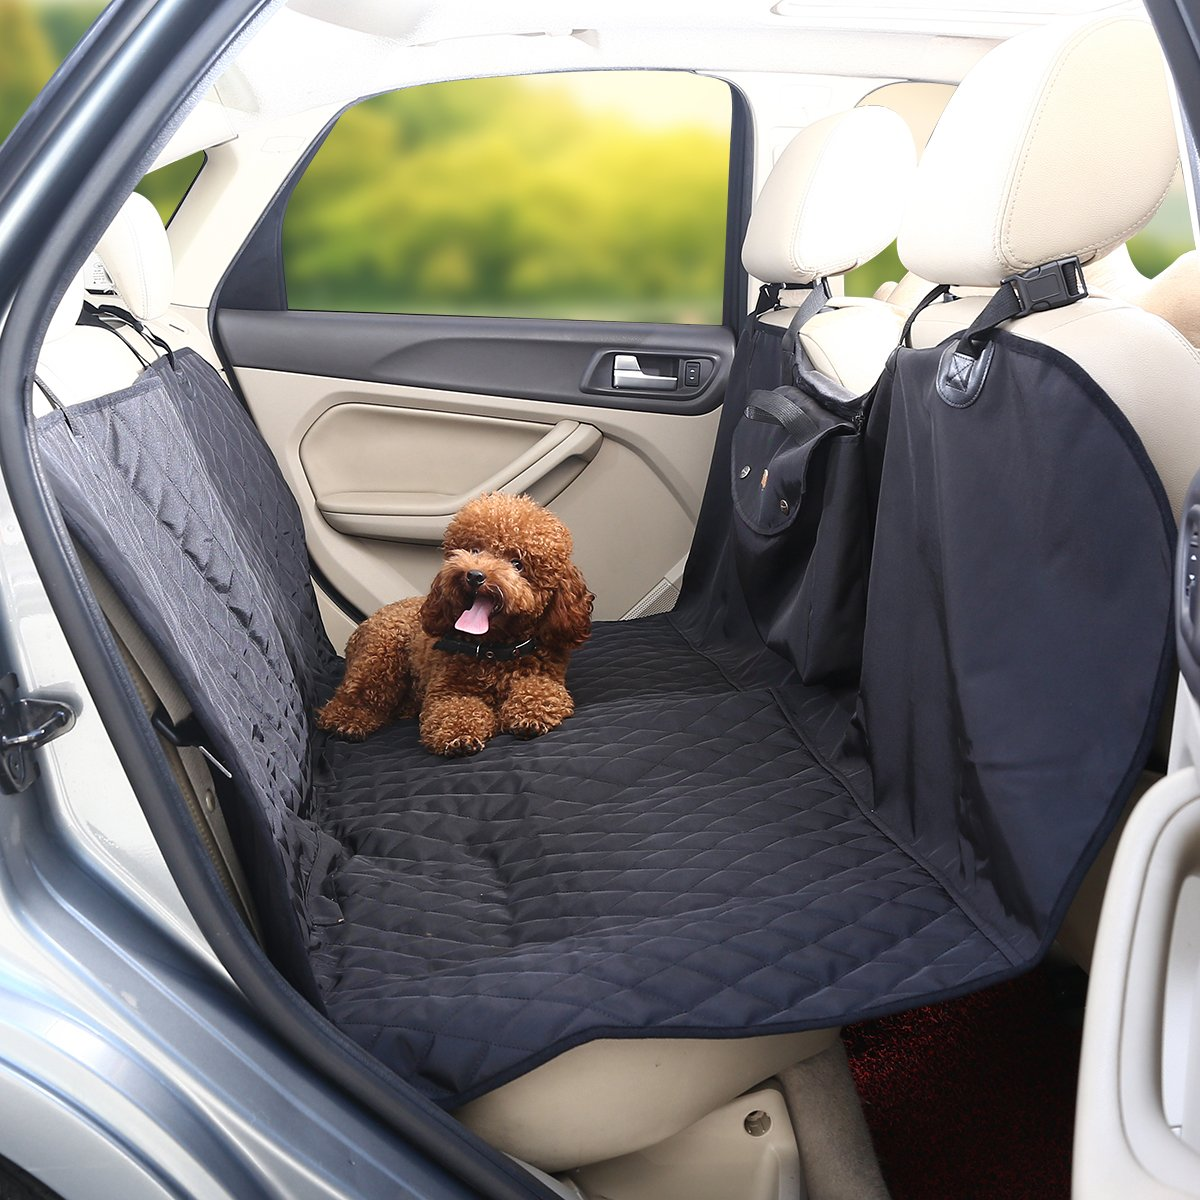 isYoung Portable Dog Car Seat Cover with Non - skid Design - Odorless, Waterproof and Durable Hammock - Harmless to Dog Seat Cover for Cars (Black/Gray)